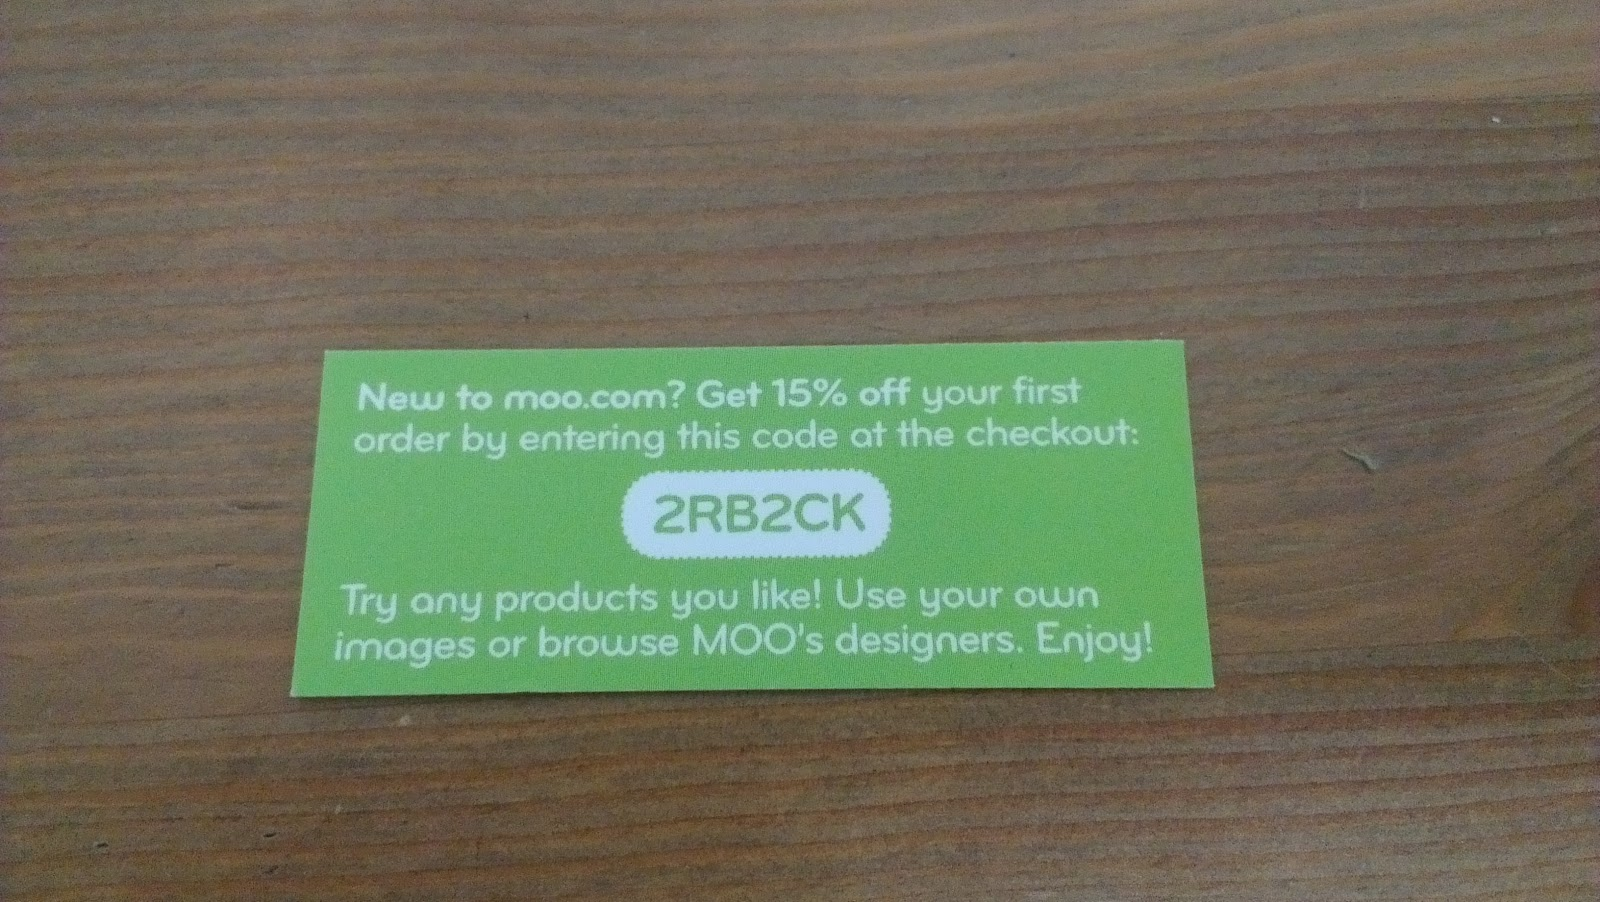 Mrs H - the blog: Moo.com discount code